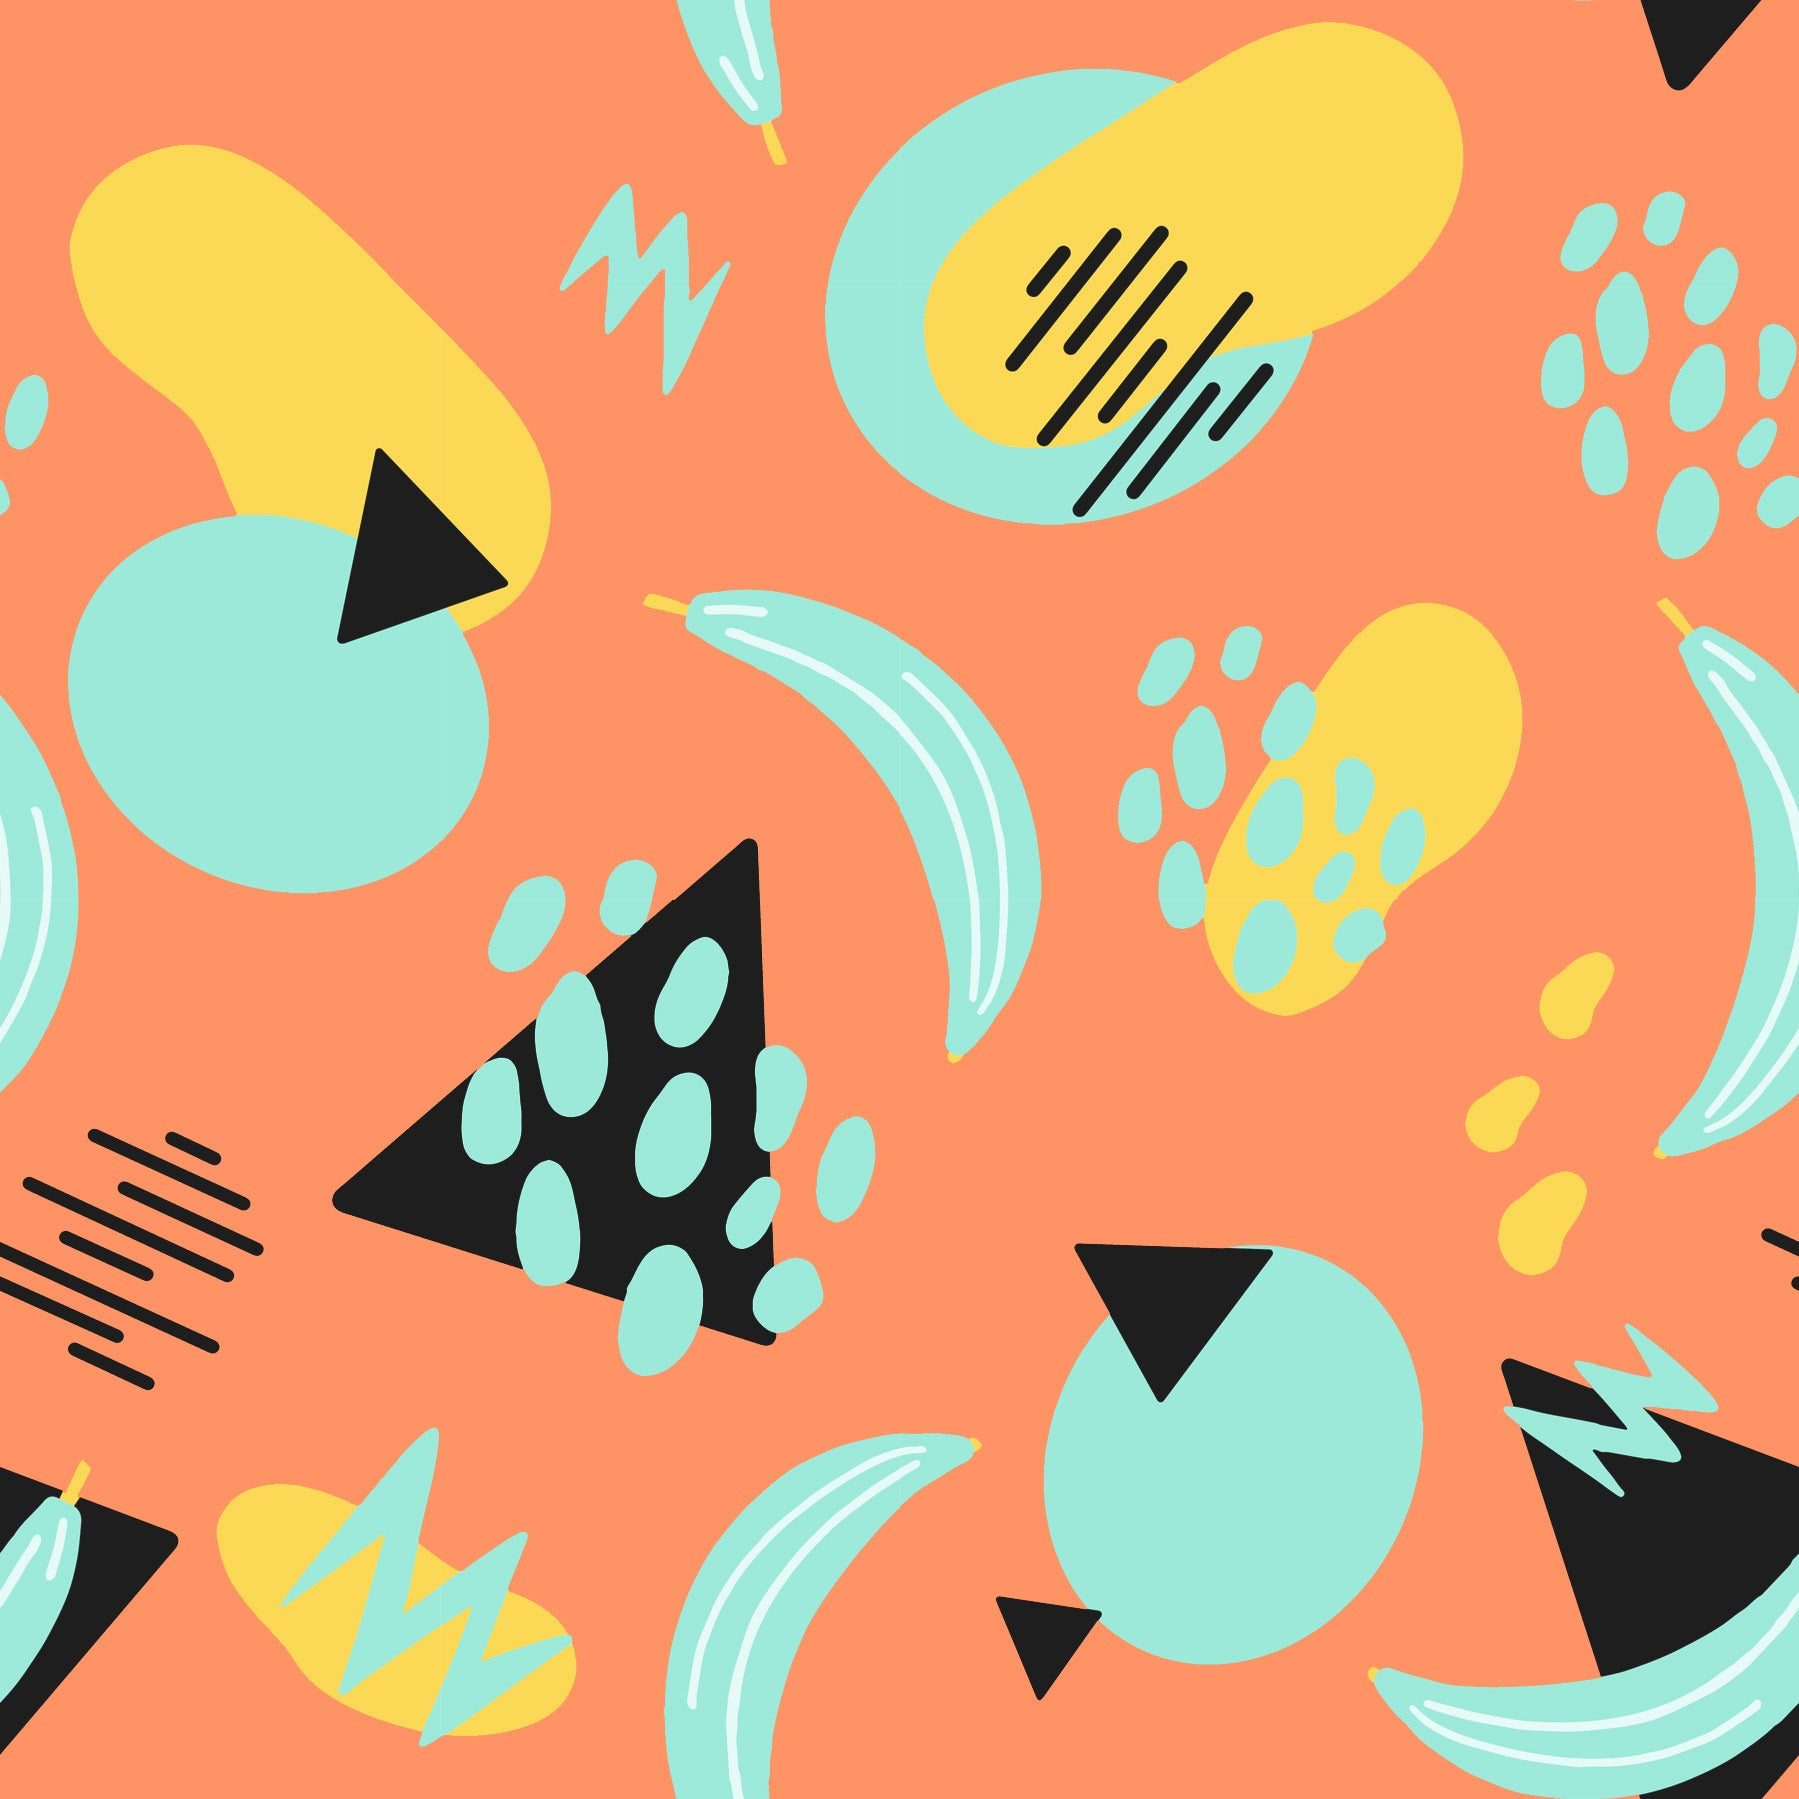 Orange Mint Yellow and Black Abstract Tossed Shape Print, Abstracts by Brielle Carlson For Club Fabrics - Raspberry Creek Fabrics Knit Fabric